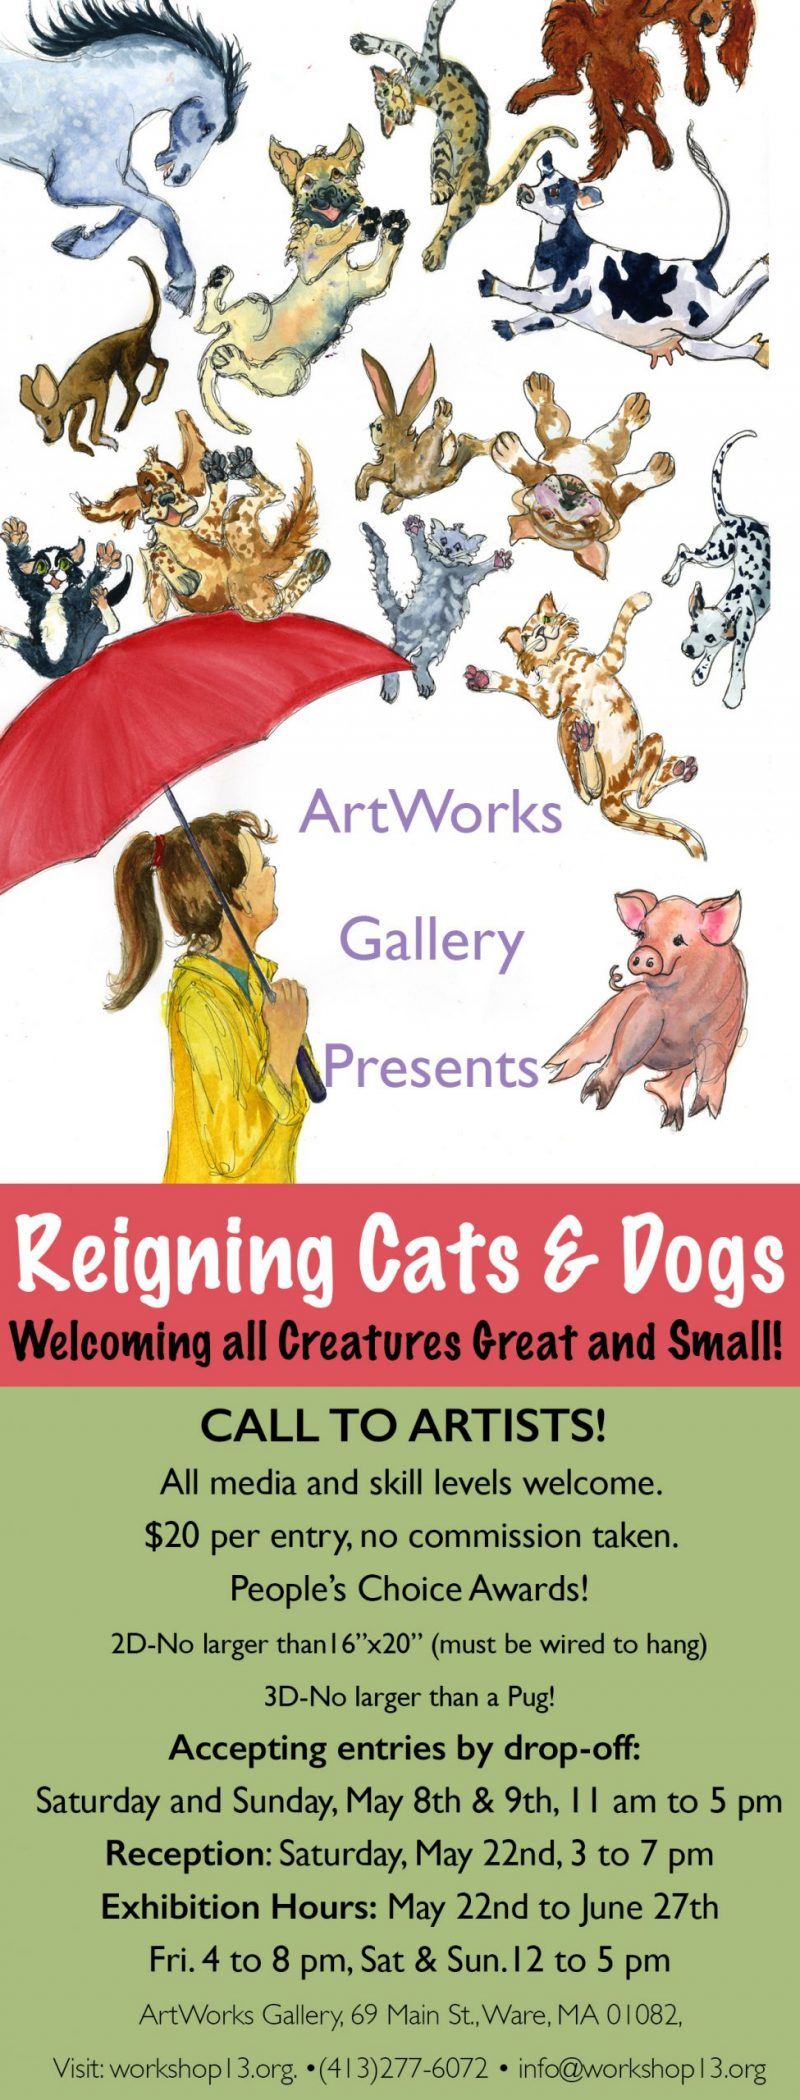 Reigning Cats&Dogs invite